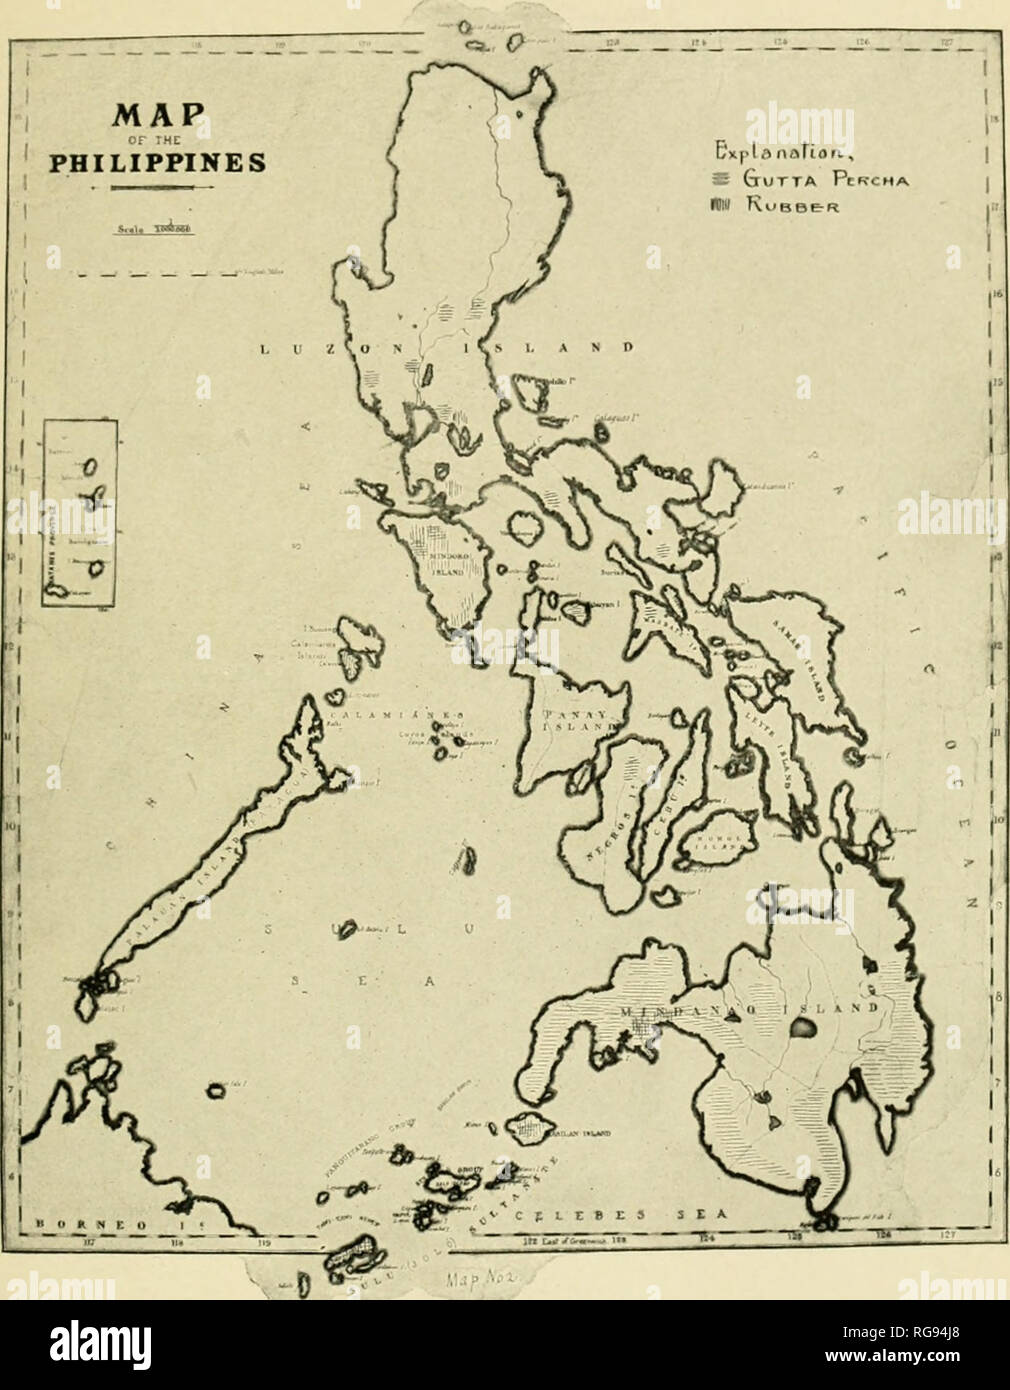 Bulletins on the rubber producing capacity of the Philippine ...